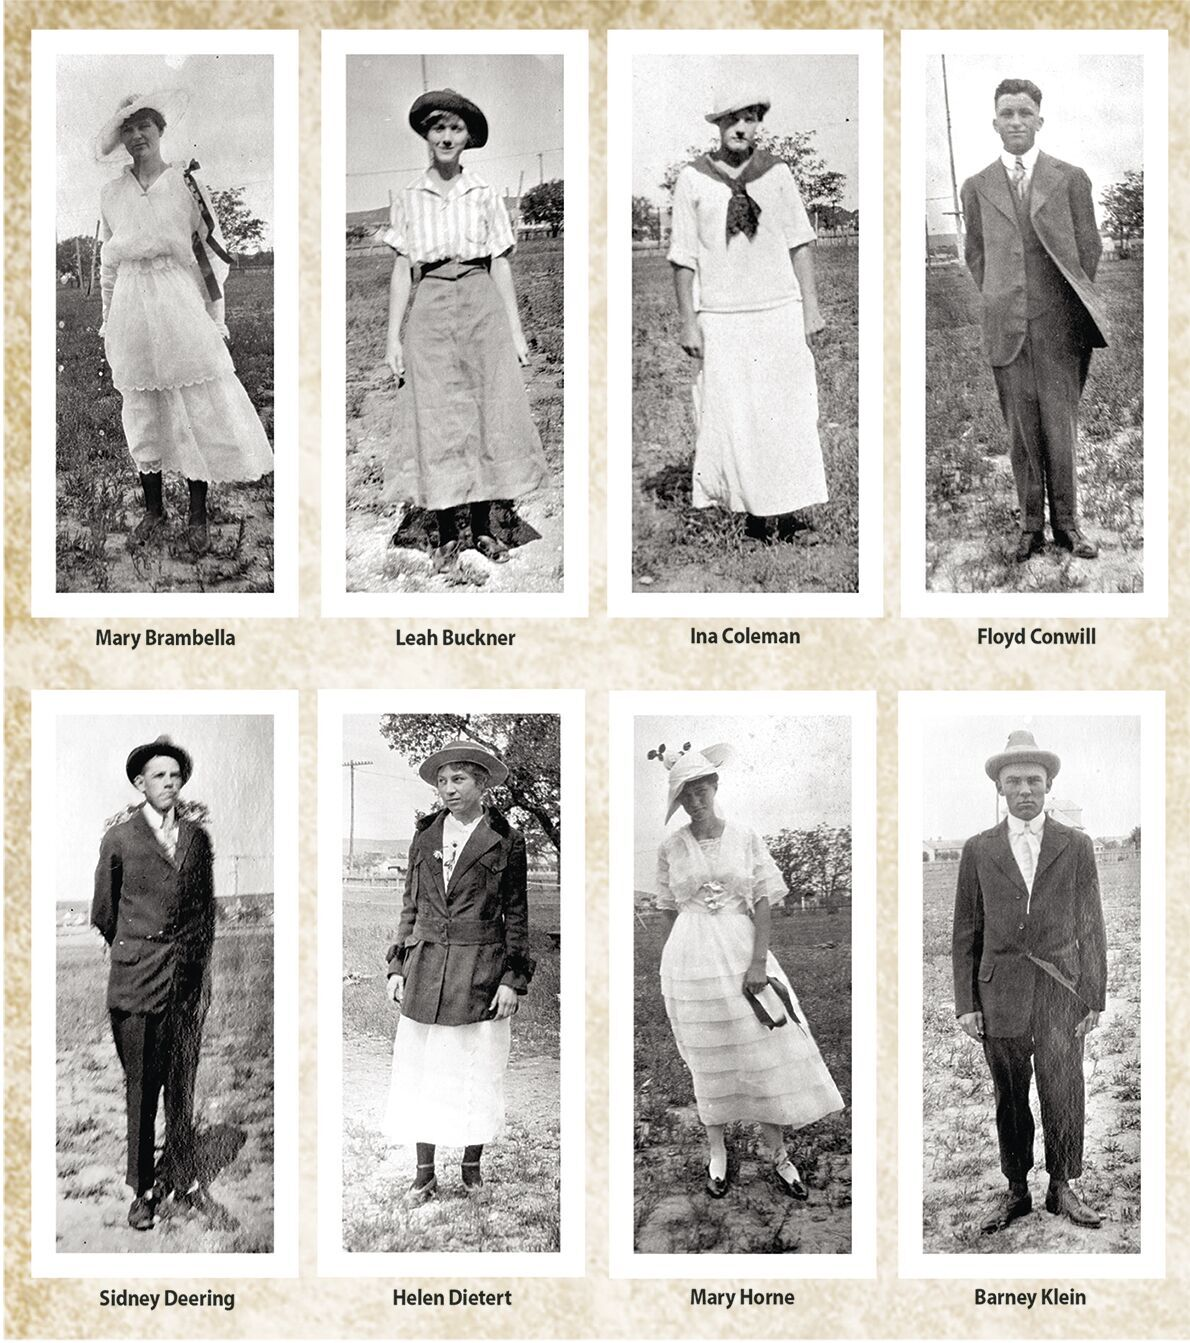 THE CLASS OF 1916